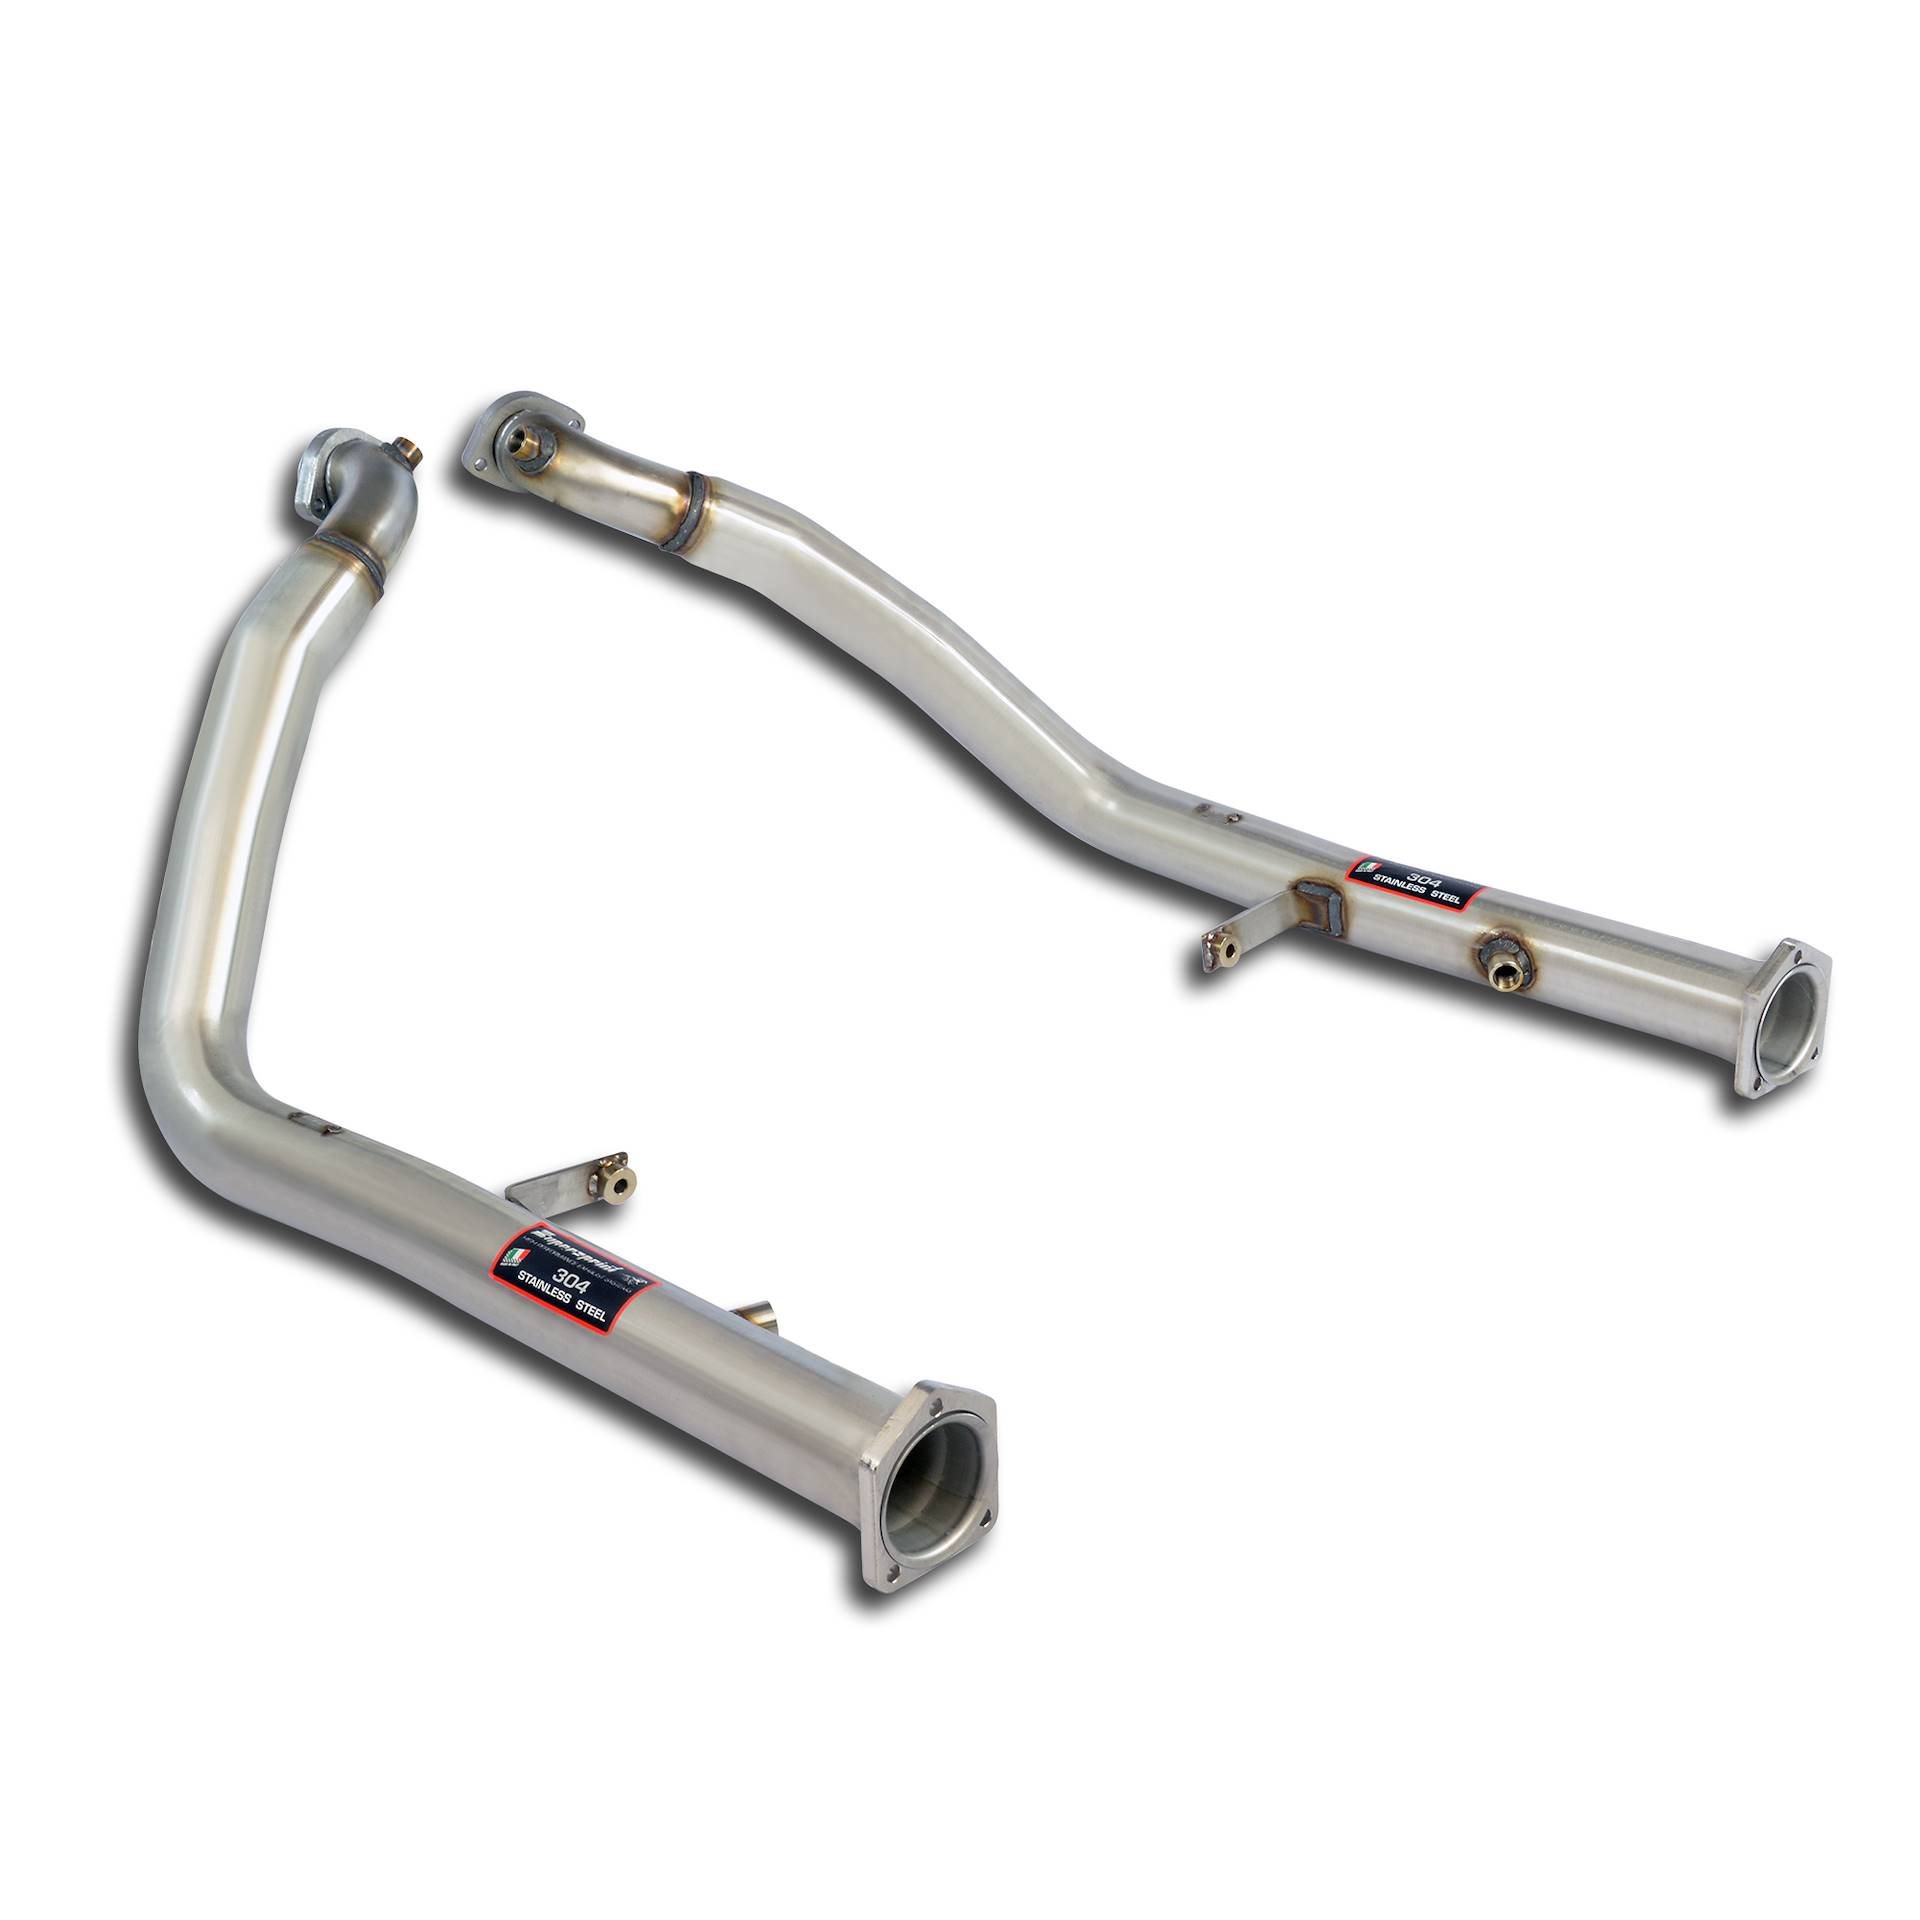 Mercedes AMG - MERCEDES W463 (4-door) G55 AMG V8 (354 Hp) 2002 -> 2004 Downpipe kit Right + Left<br>(Replaces catalytic converter), performance exhaust systems